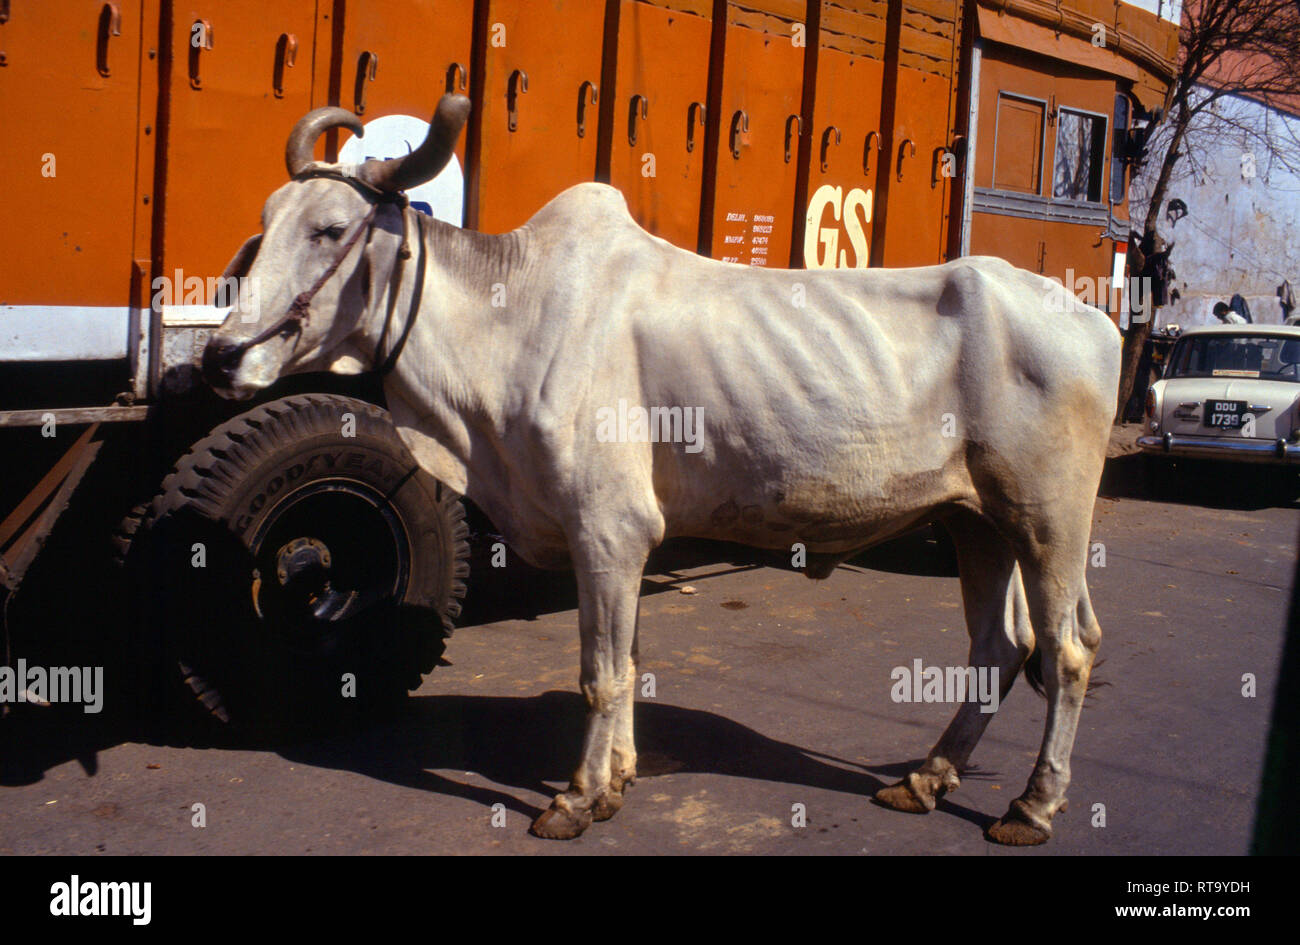 sacred cow, Hindu, religion, Hinduism, bull, tied to truck, Delhi, India, - Stock Image